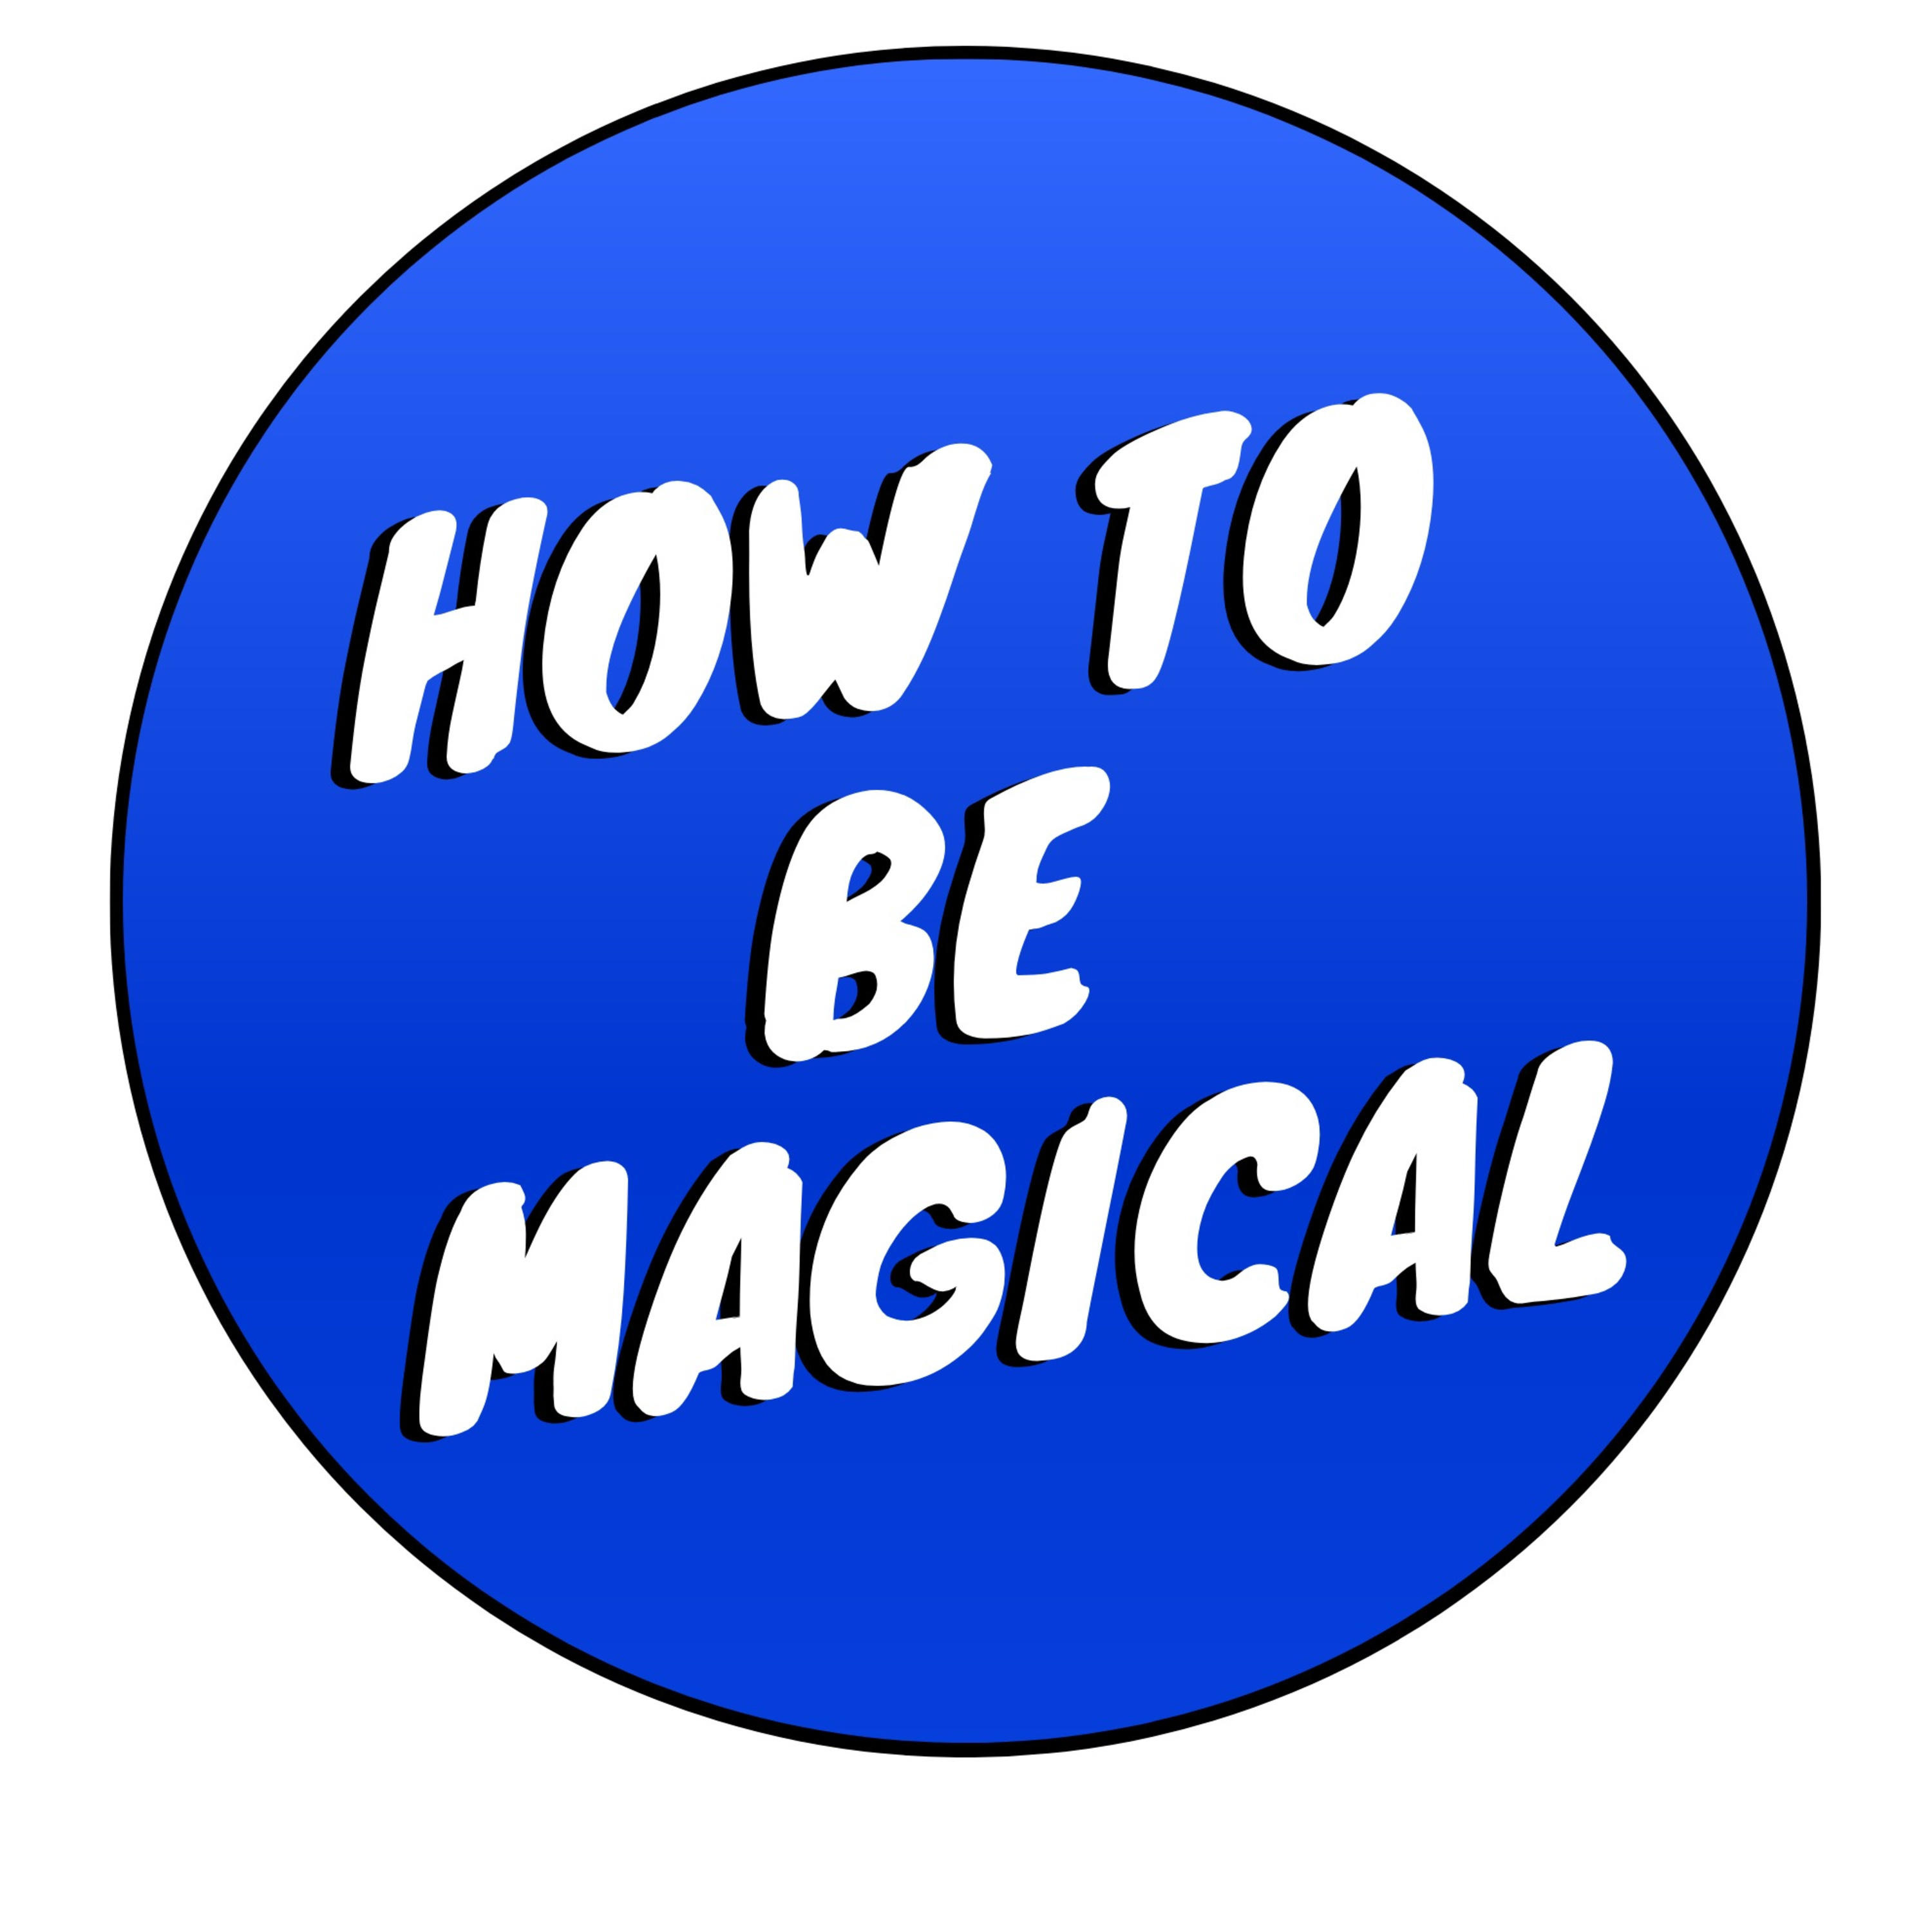 How To Be Magical